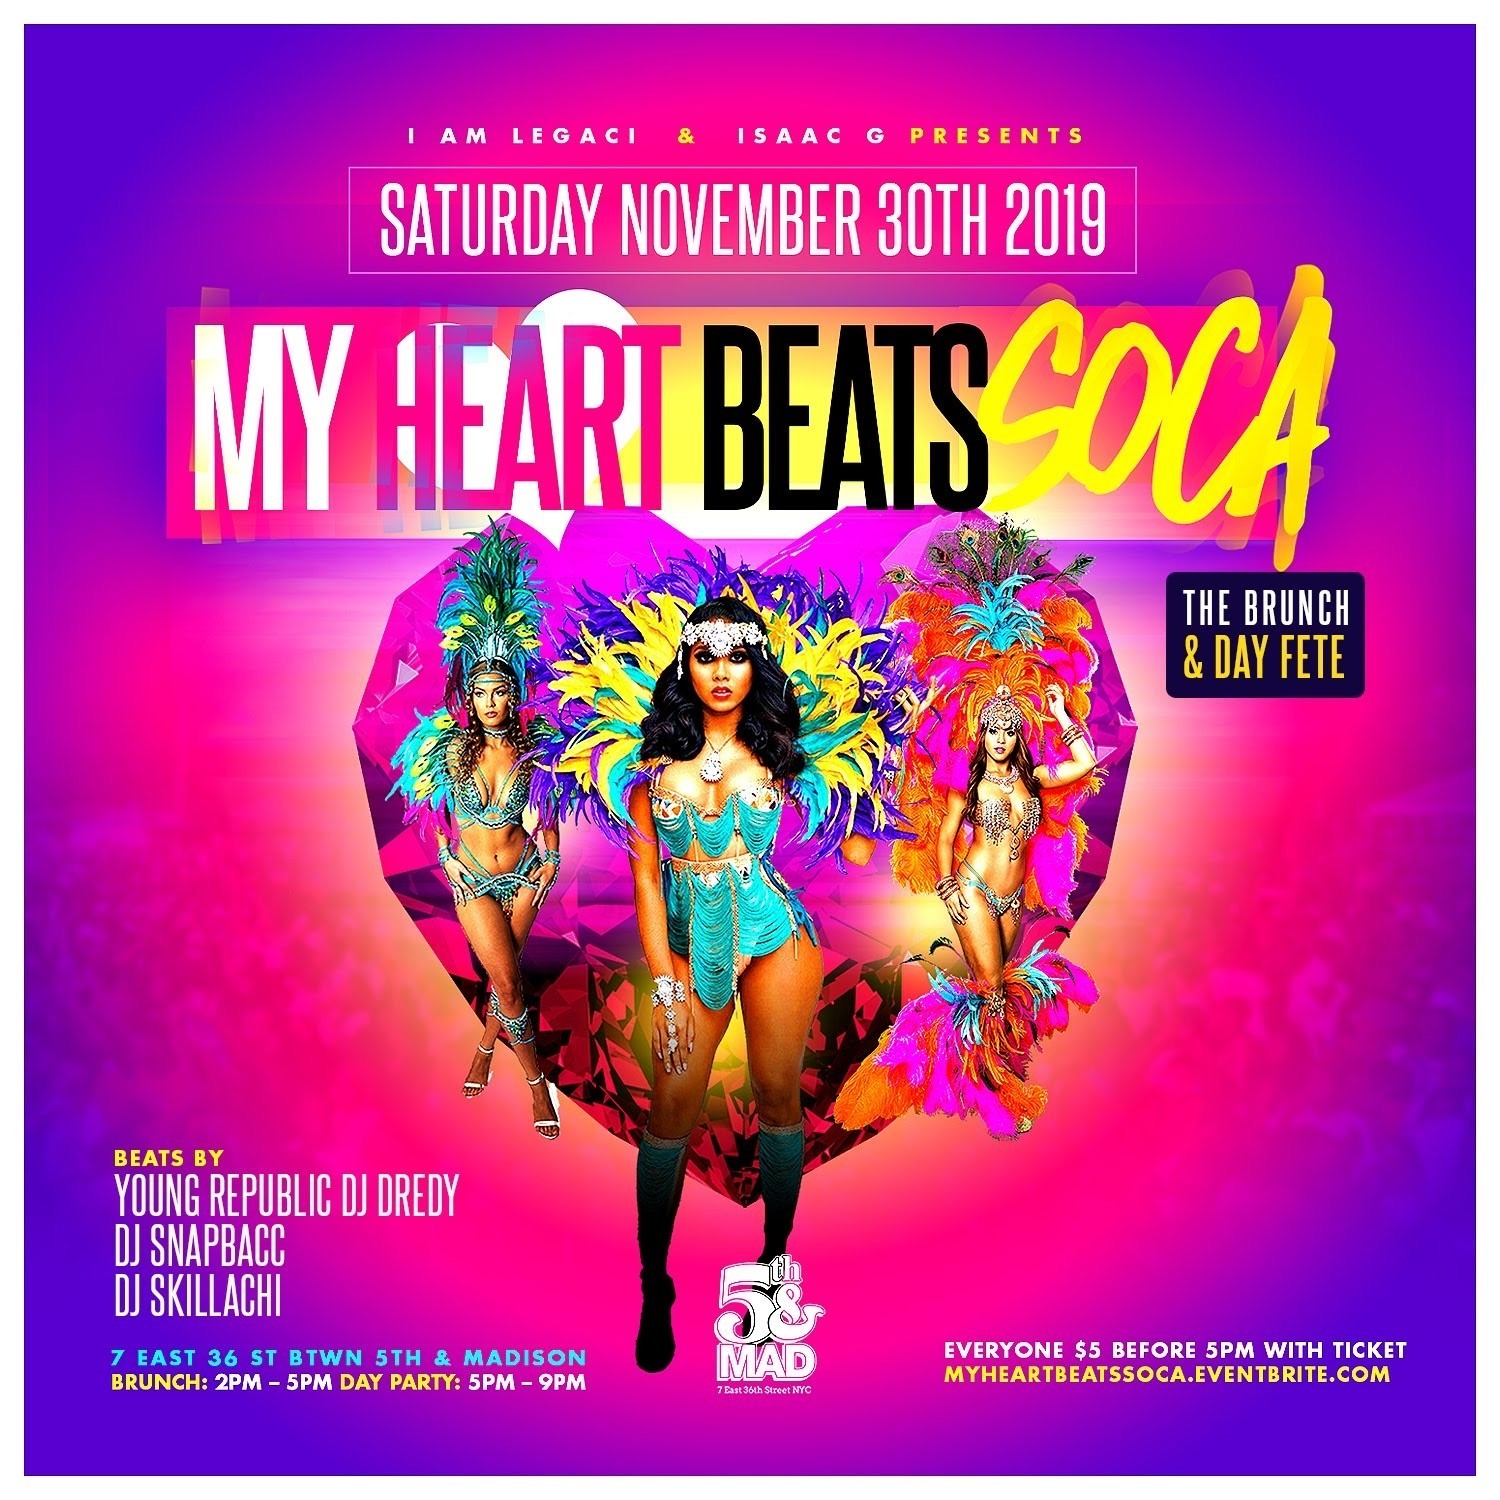 MY HEART BEATS SOCA 11/30 Brunch & Day Fete limited $5 Tickets